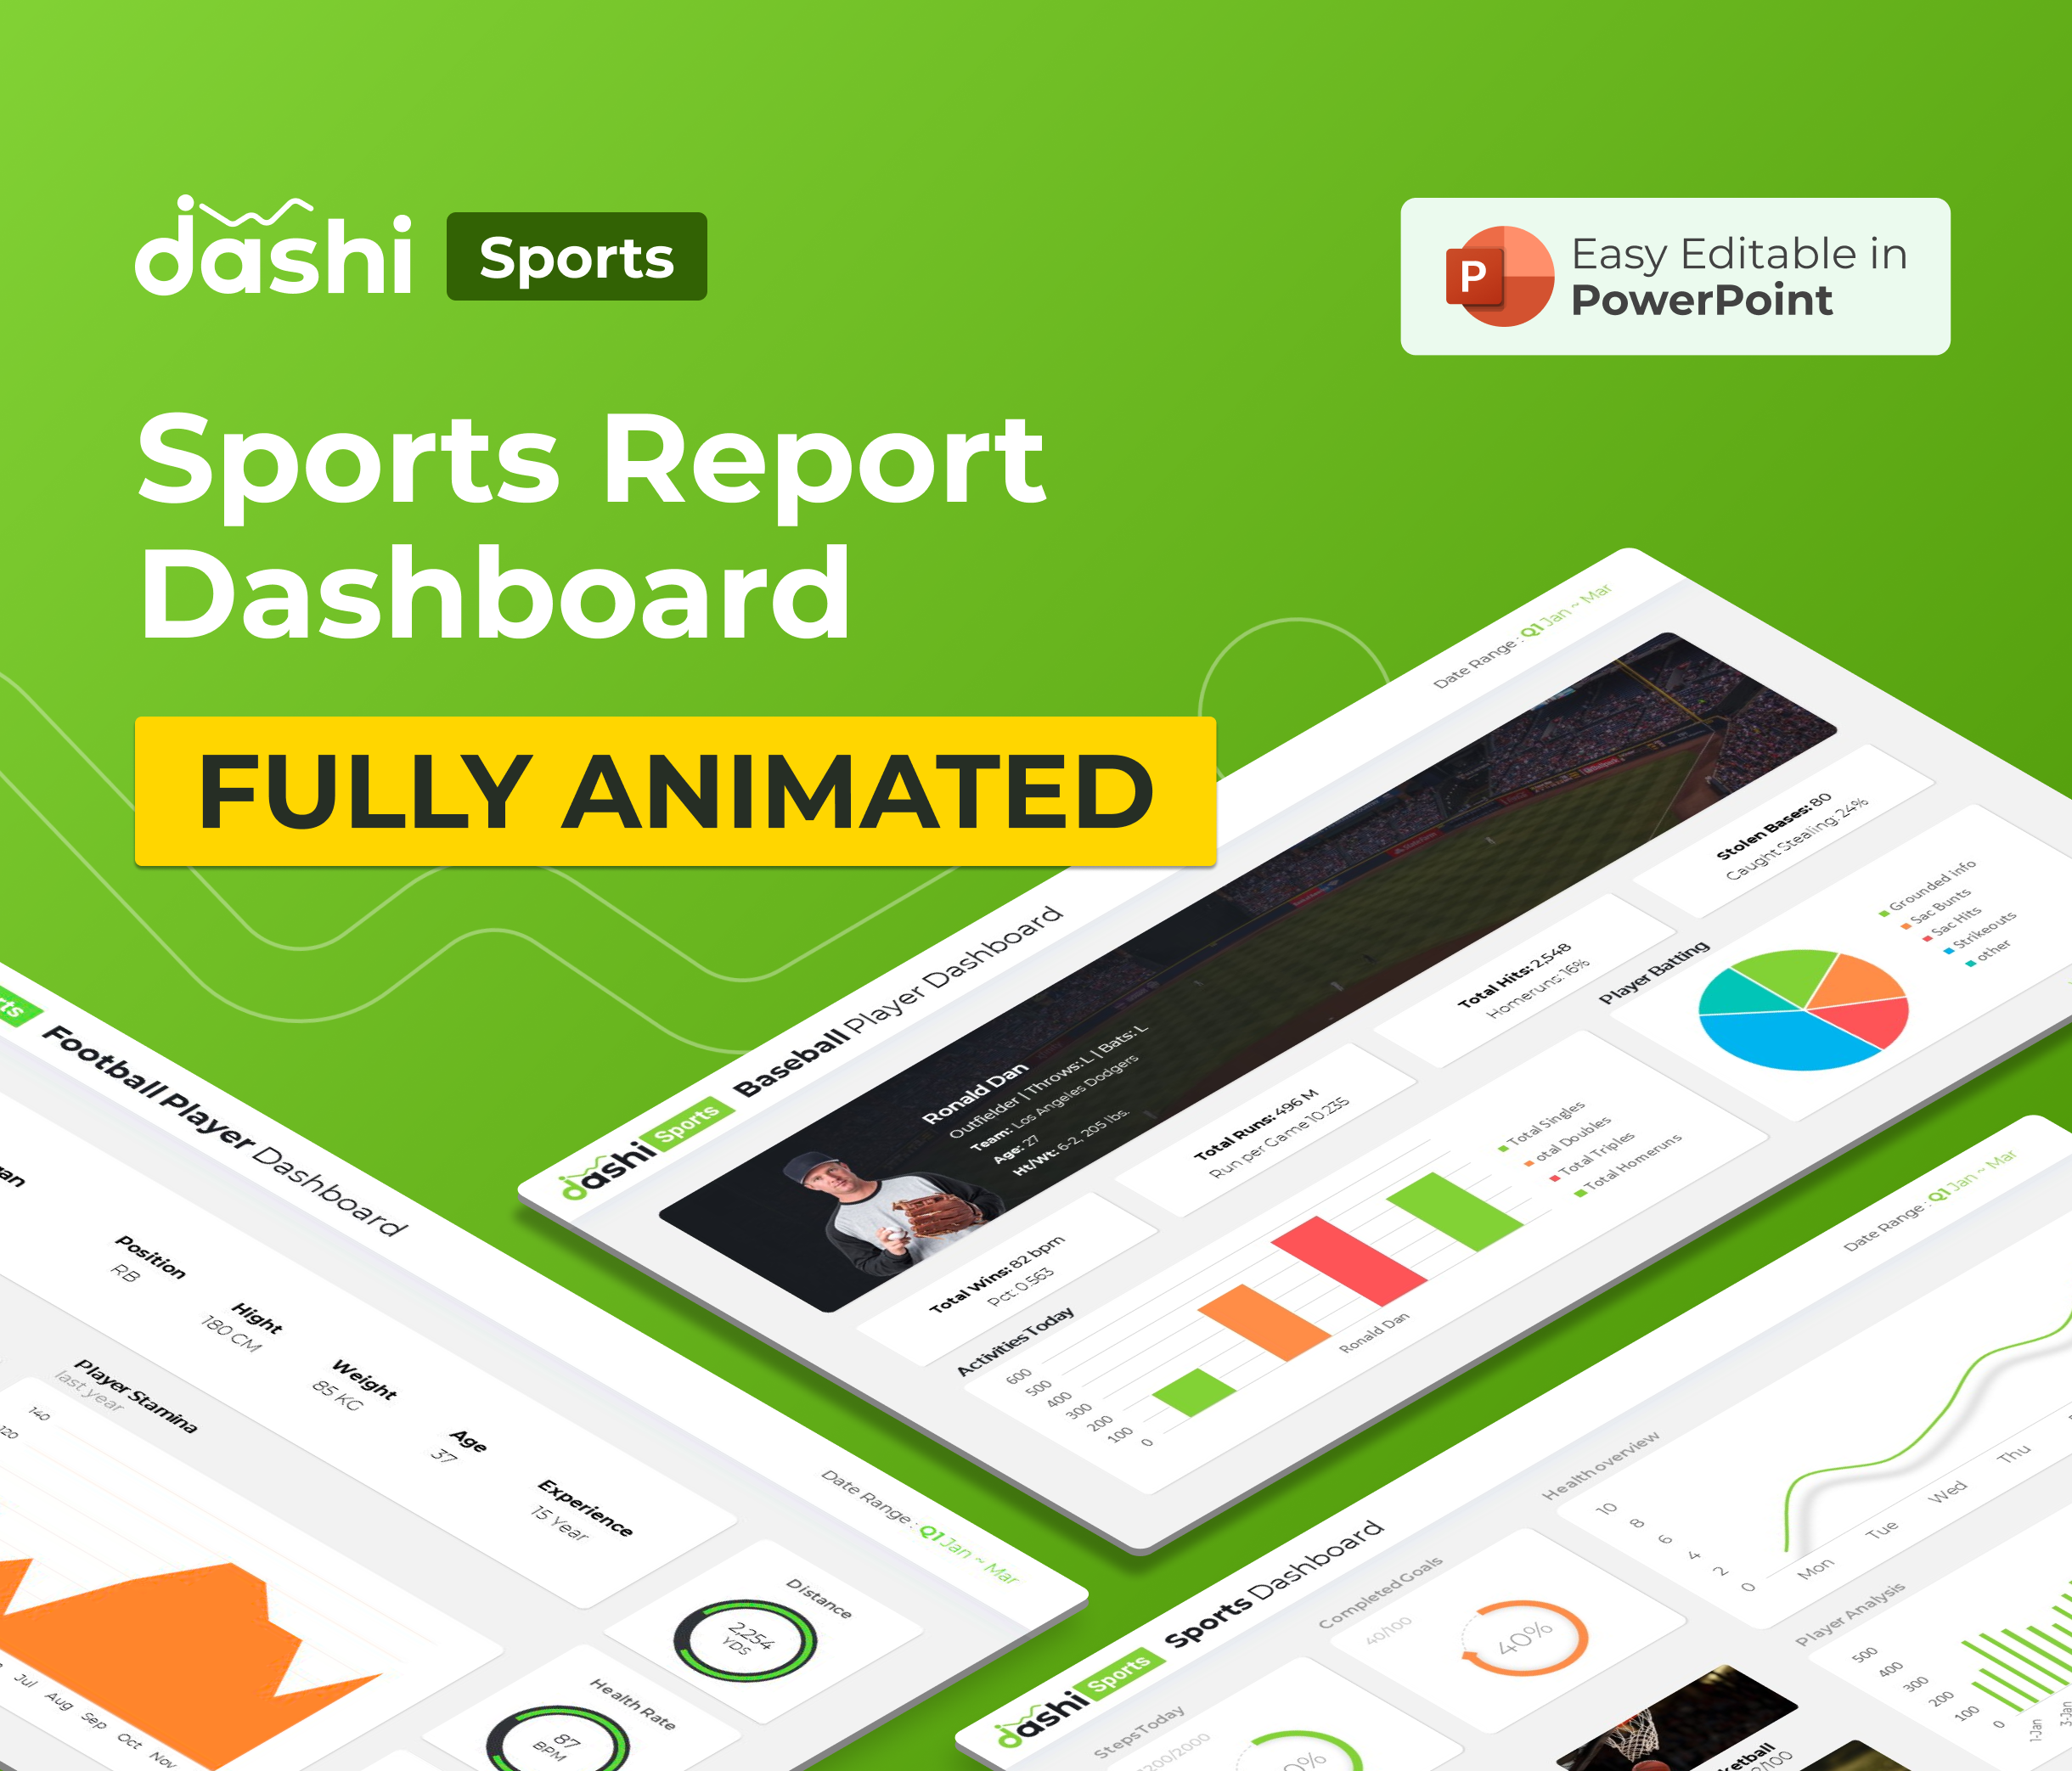 dashi Sports Dashboard PowerPoint Report Presentation